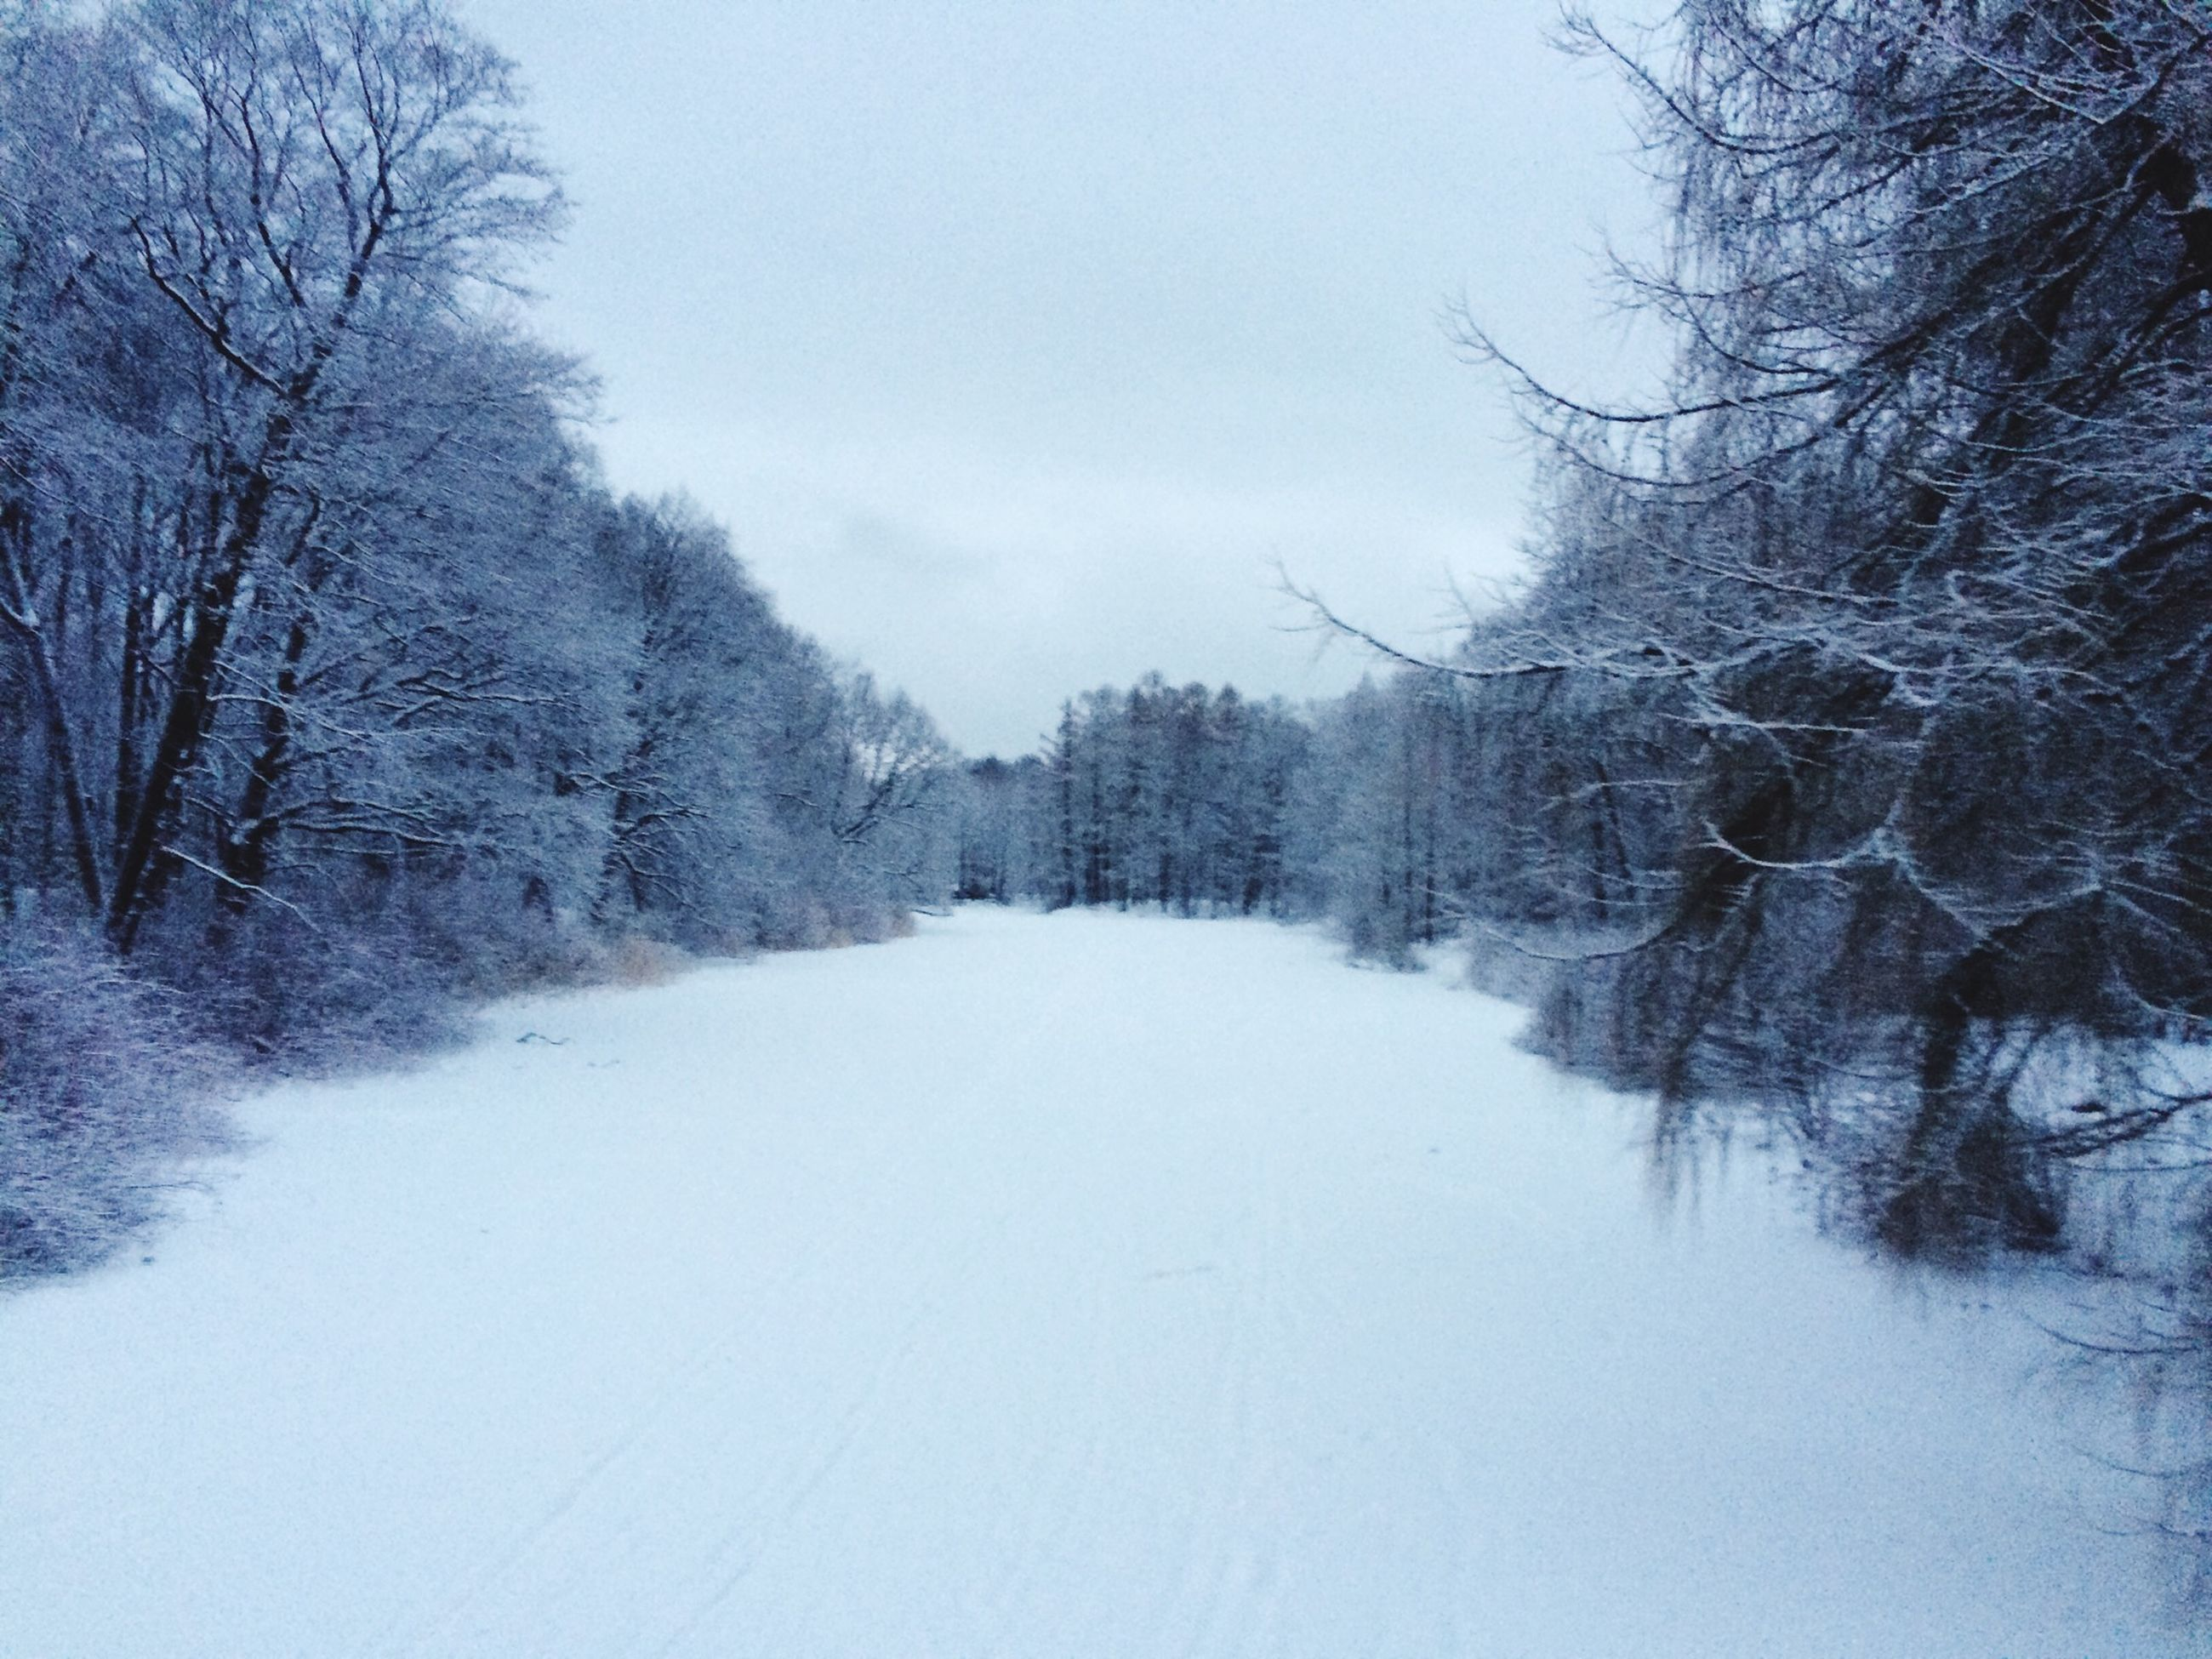 snow, winter, cold temperature, season, weather, tree, bare tree, the way forward, tranquility, tranquil scene, covering, nature, beauty in nature, scenics, frozen, landscape, diminishing perspective, sky, non-urban scene, covered